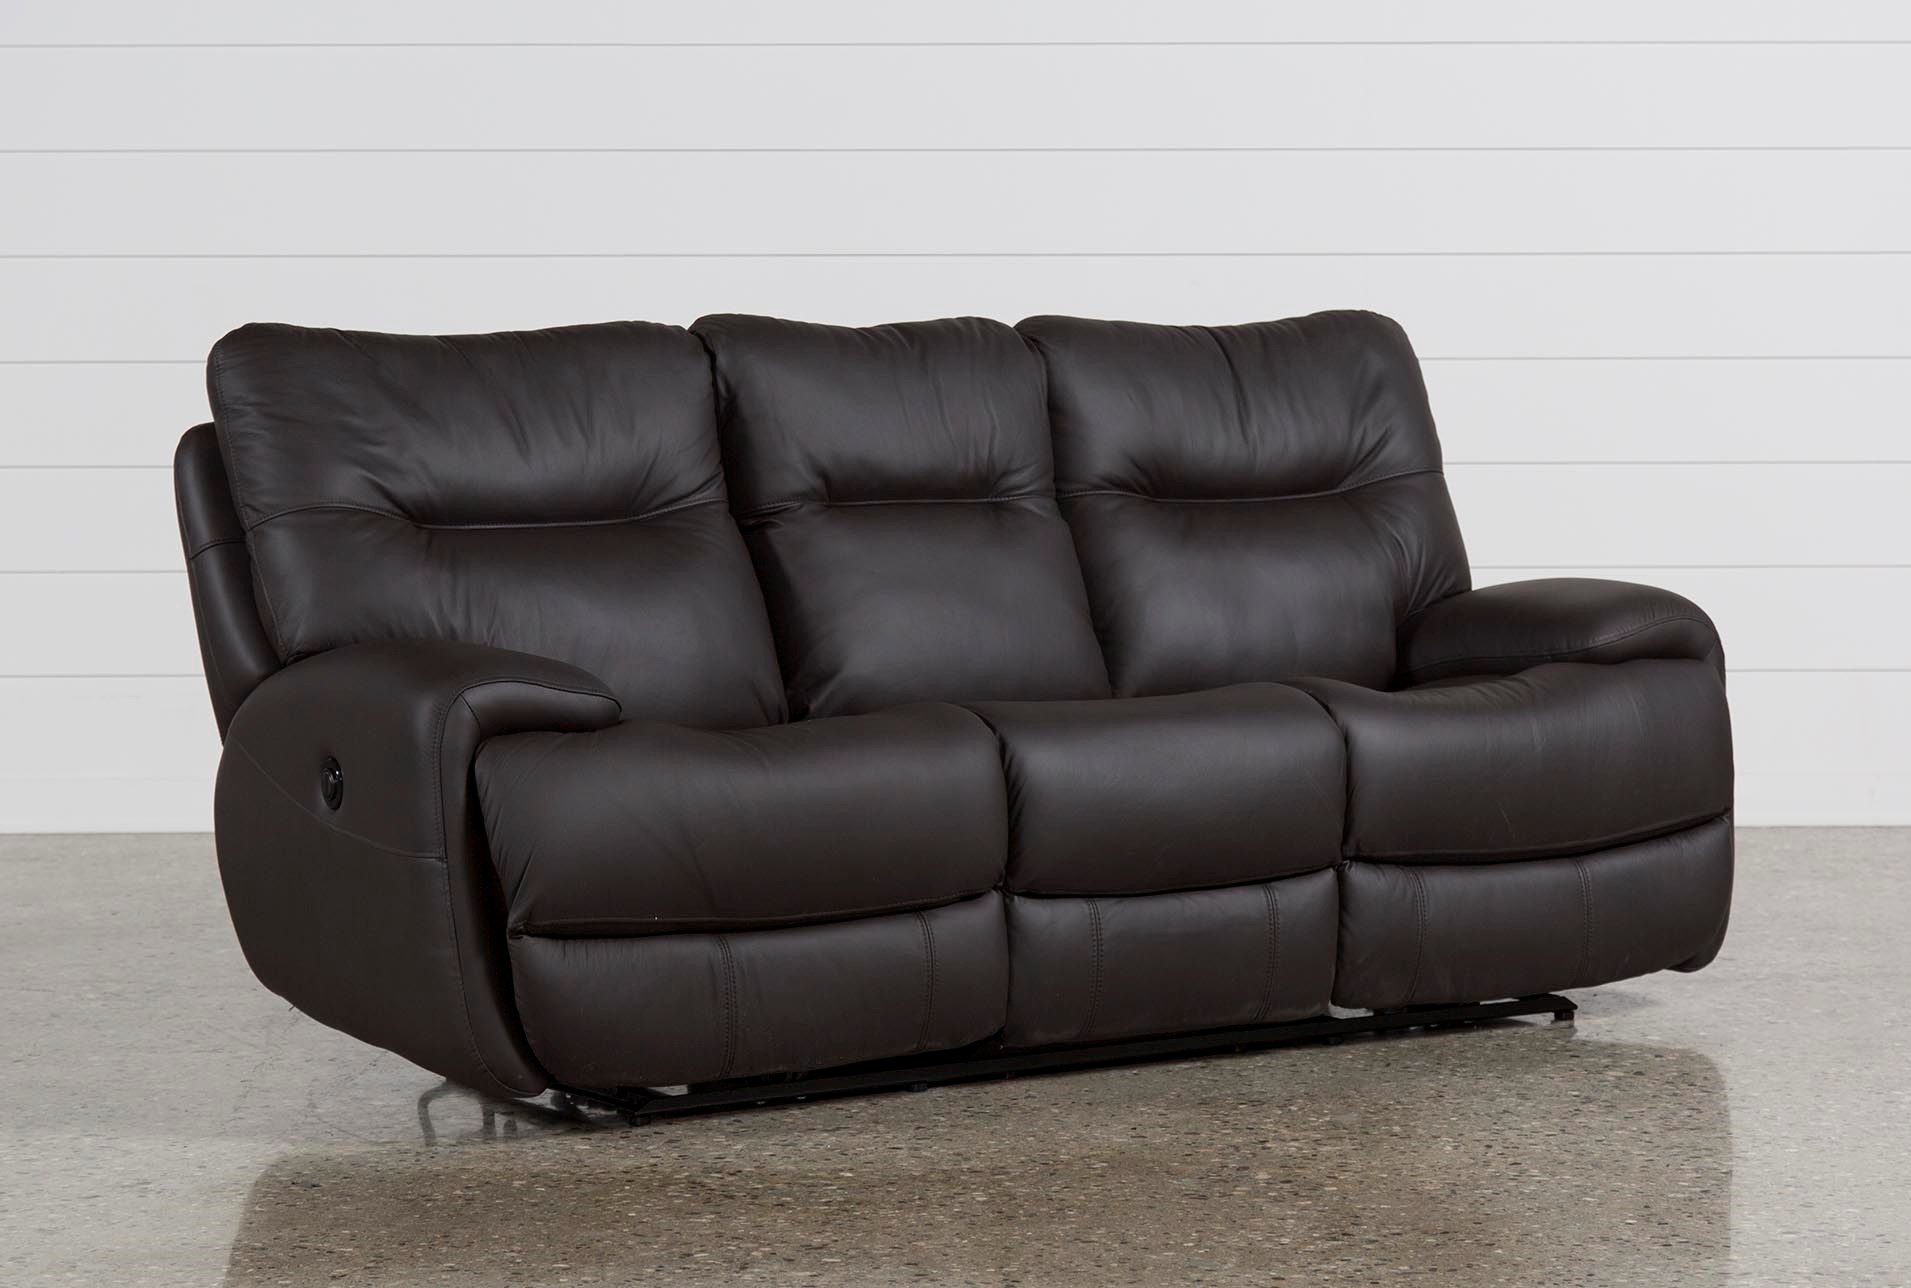 furniture sofa brown room living hancock leather store light rc view reclining rcwilley willey jsp whiskey recliner power sofas